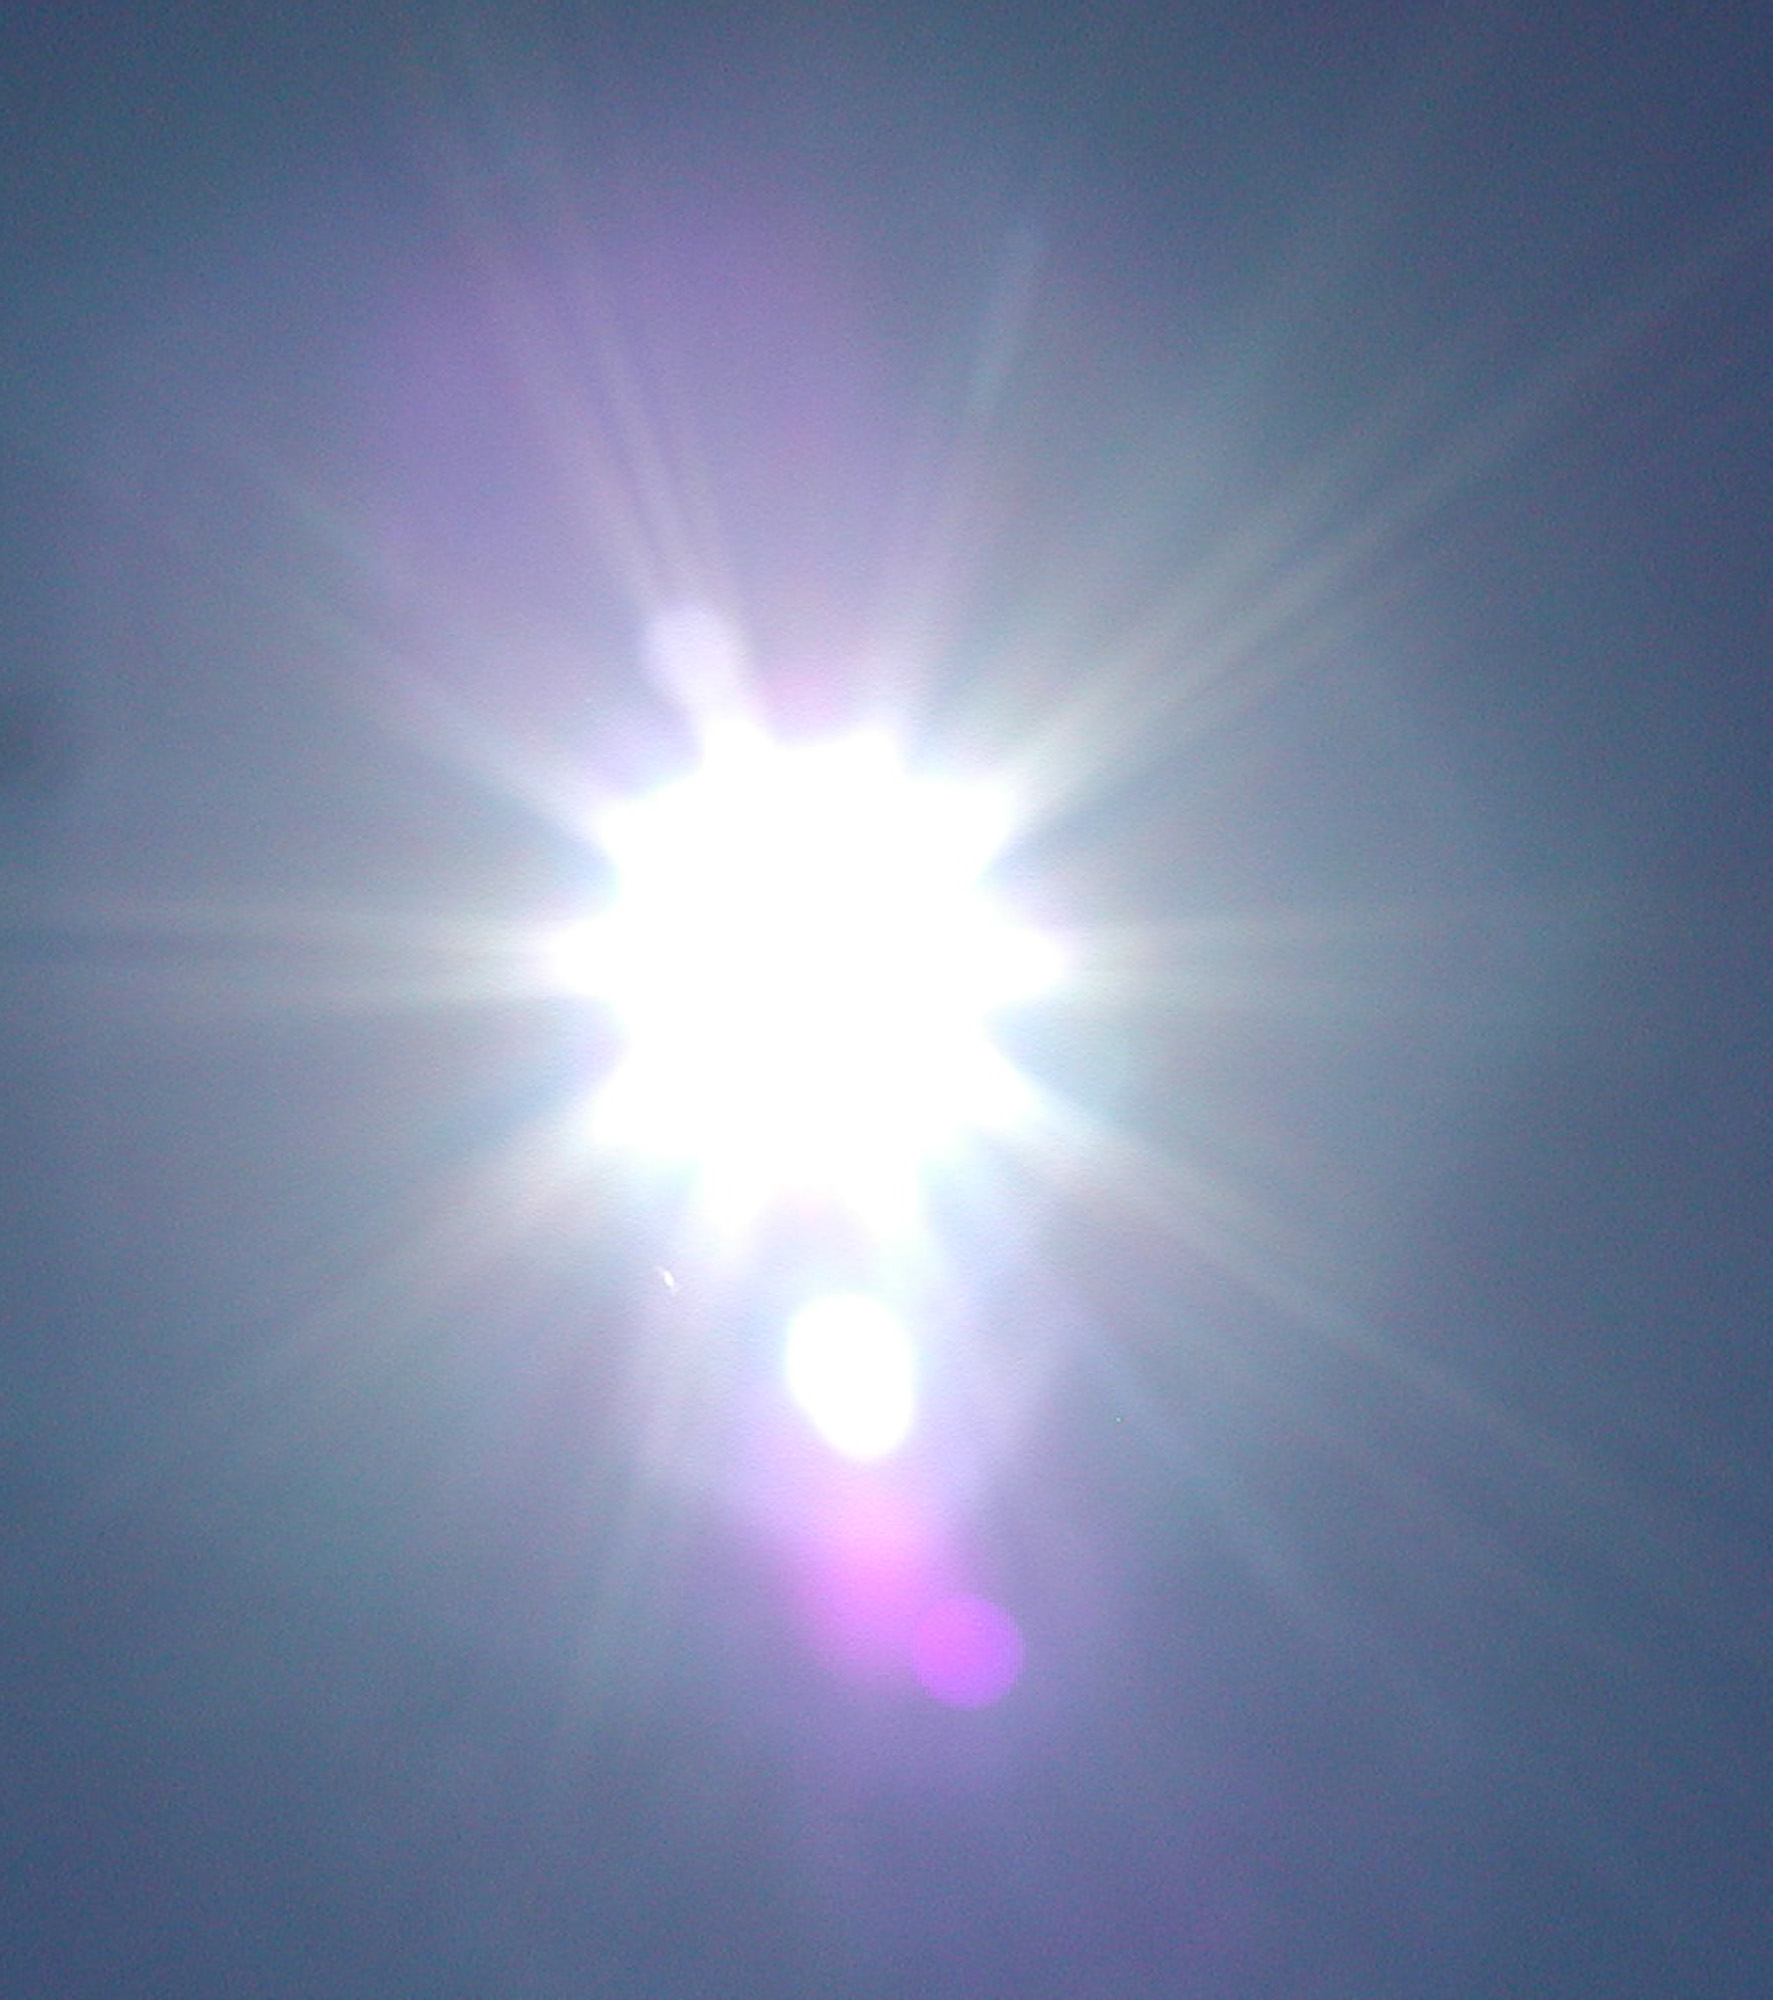 Hot summertime tempeartures broke records across Georgia in June. Augusta had a record daily high temperature June 15 of 104 degrees, breaking the old record of 100 set in 1971.